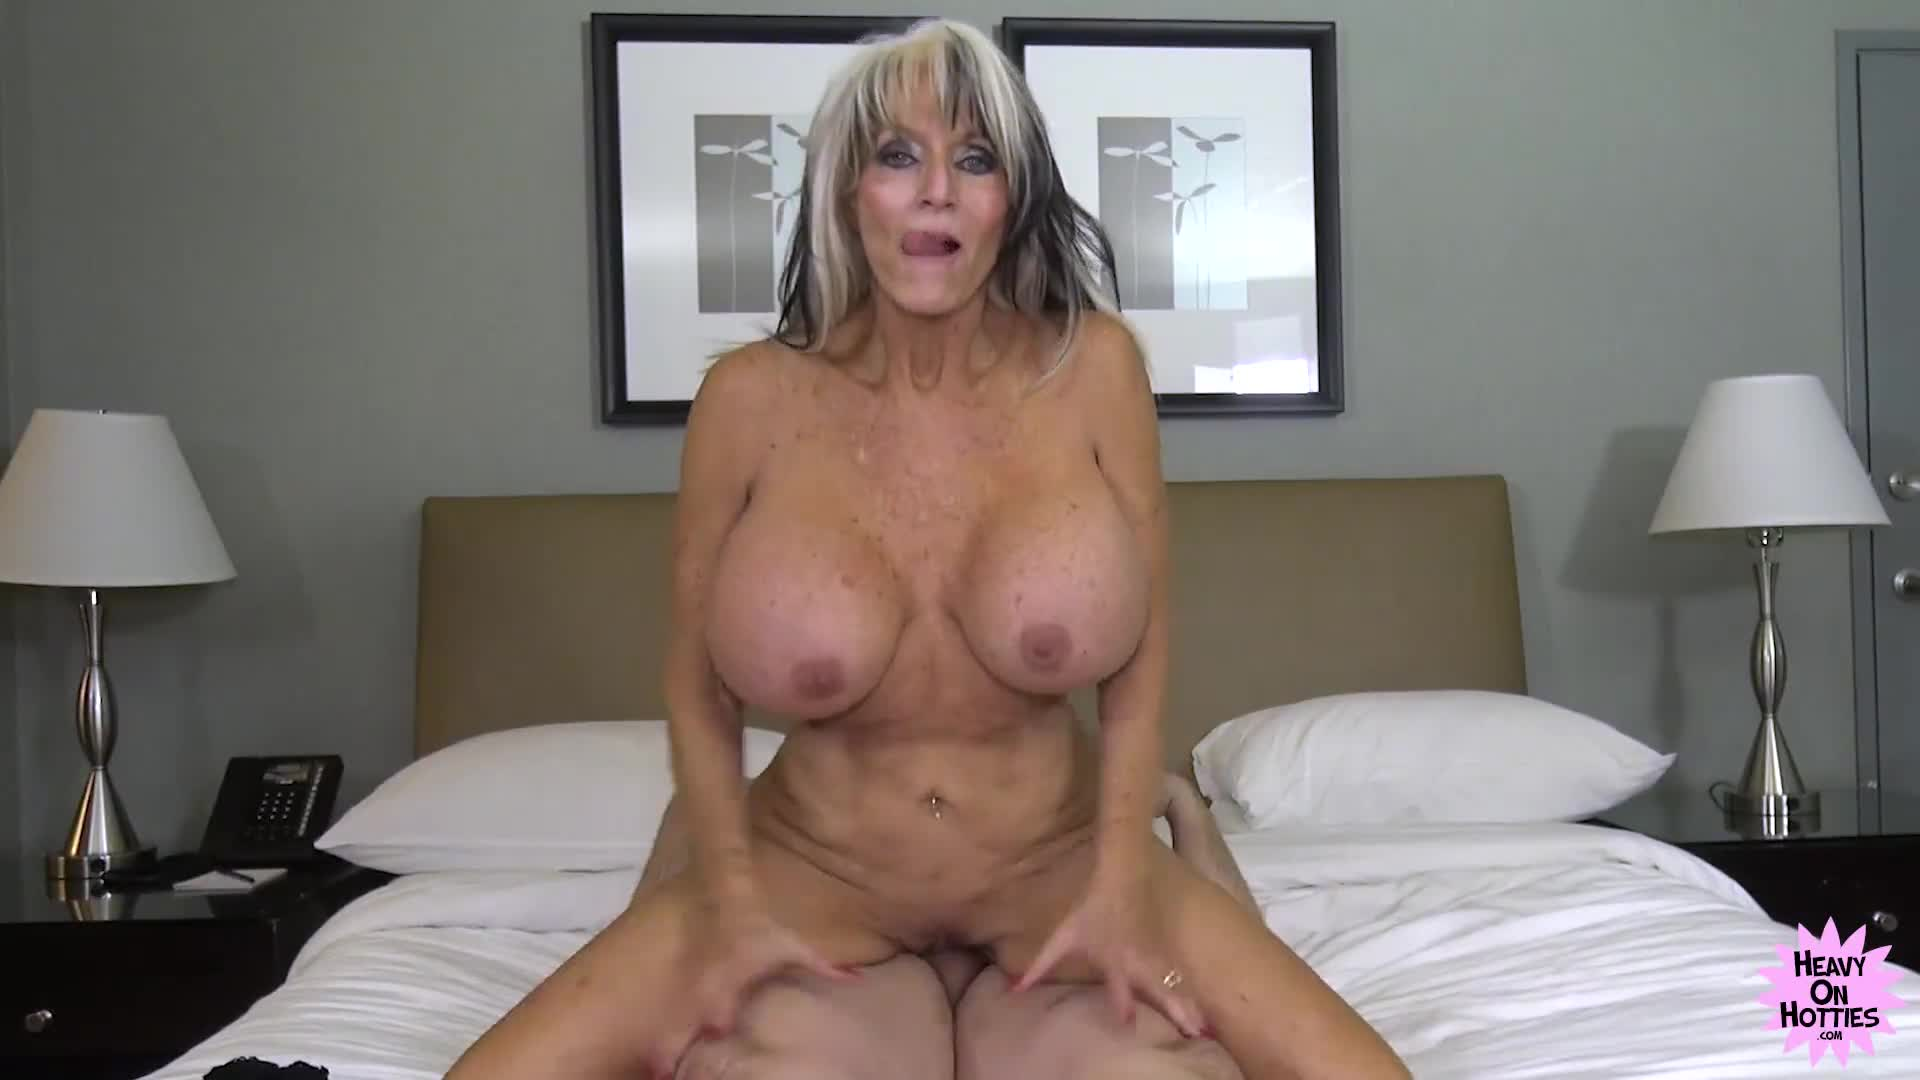 Giant Fake Tit Mature - Mature granny with fake boobs fucked and dominated - XFantazy.com